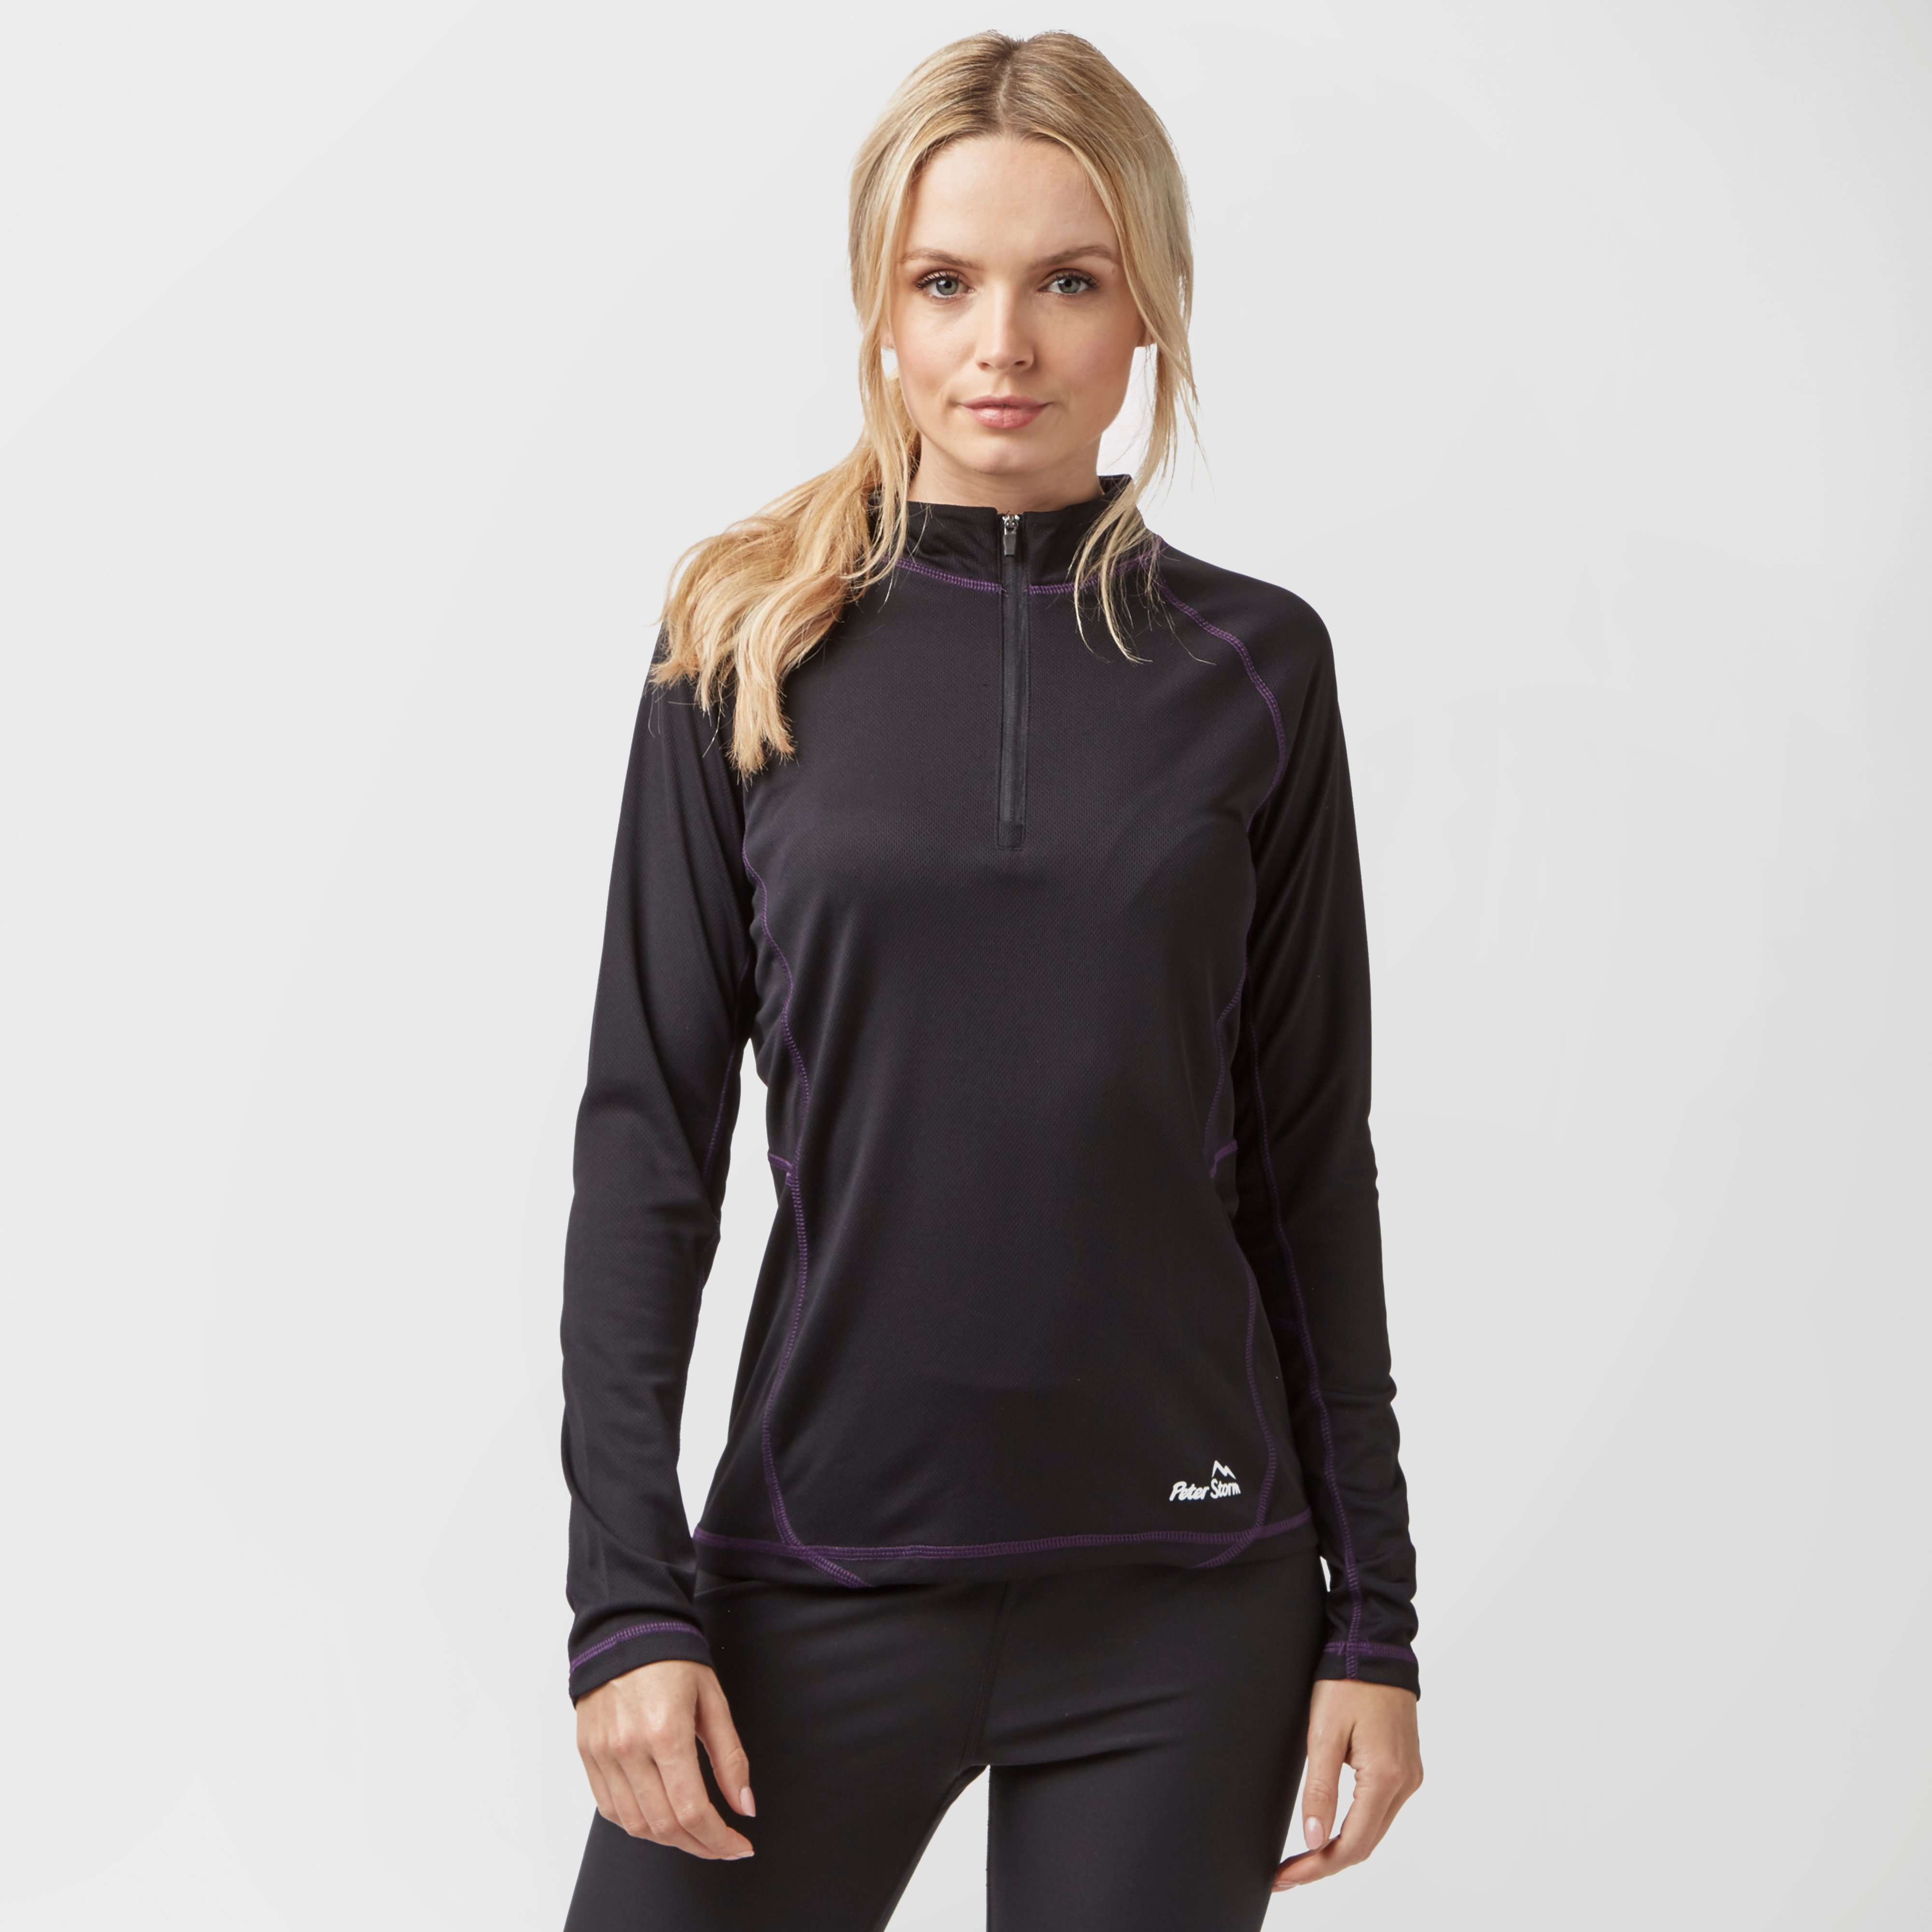 PETER STORM Women's Long Sleeve Quarter-Zip Tech Top